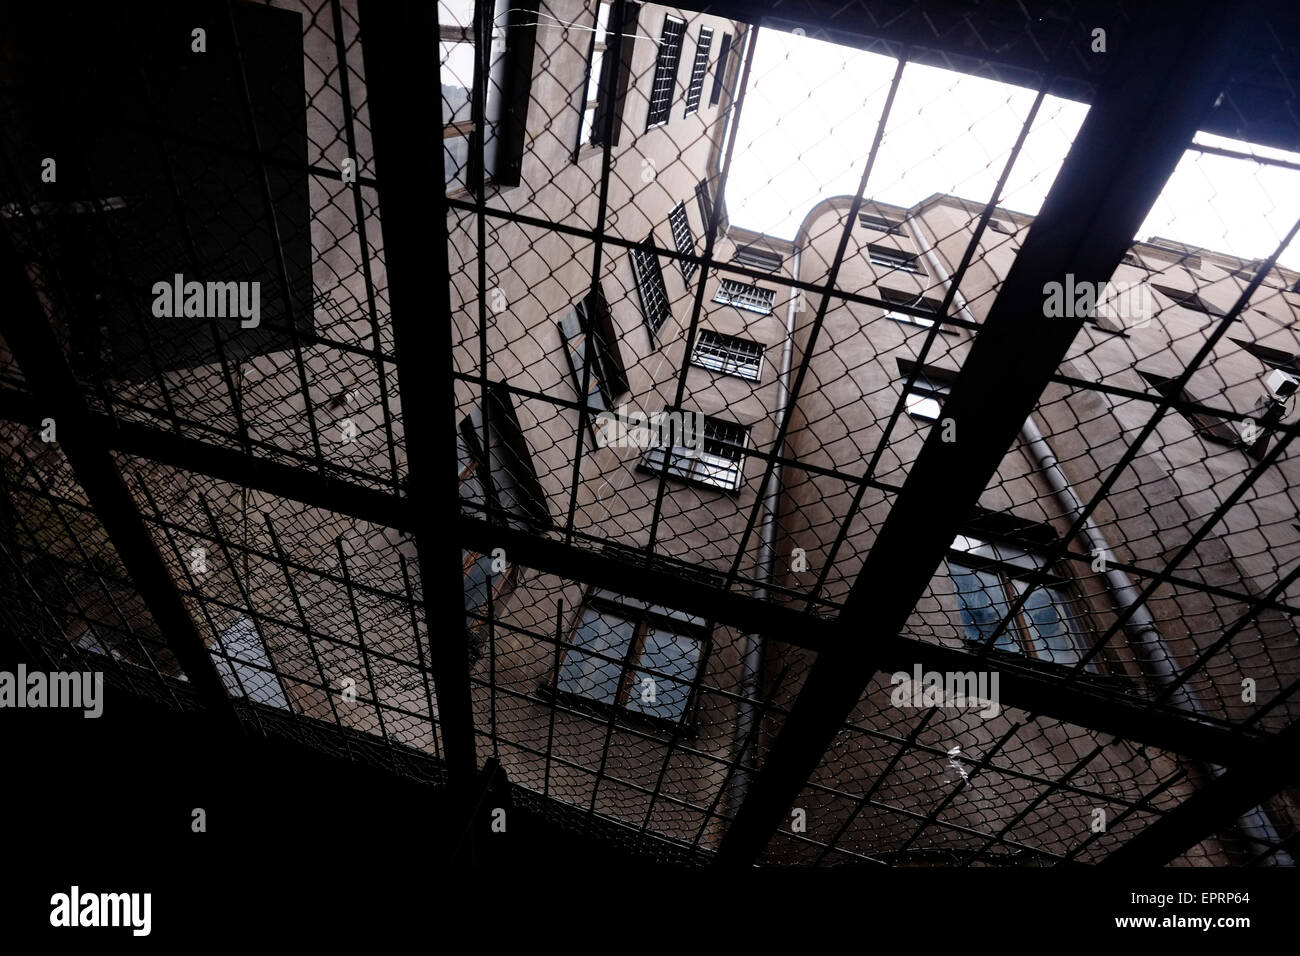 Ceiling fence covering the basement prison courtyard at the former KGB, or 'Cheka' headquarters known by locals - Stock Image